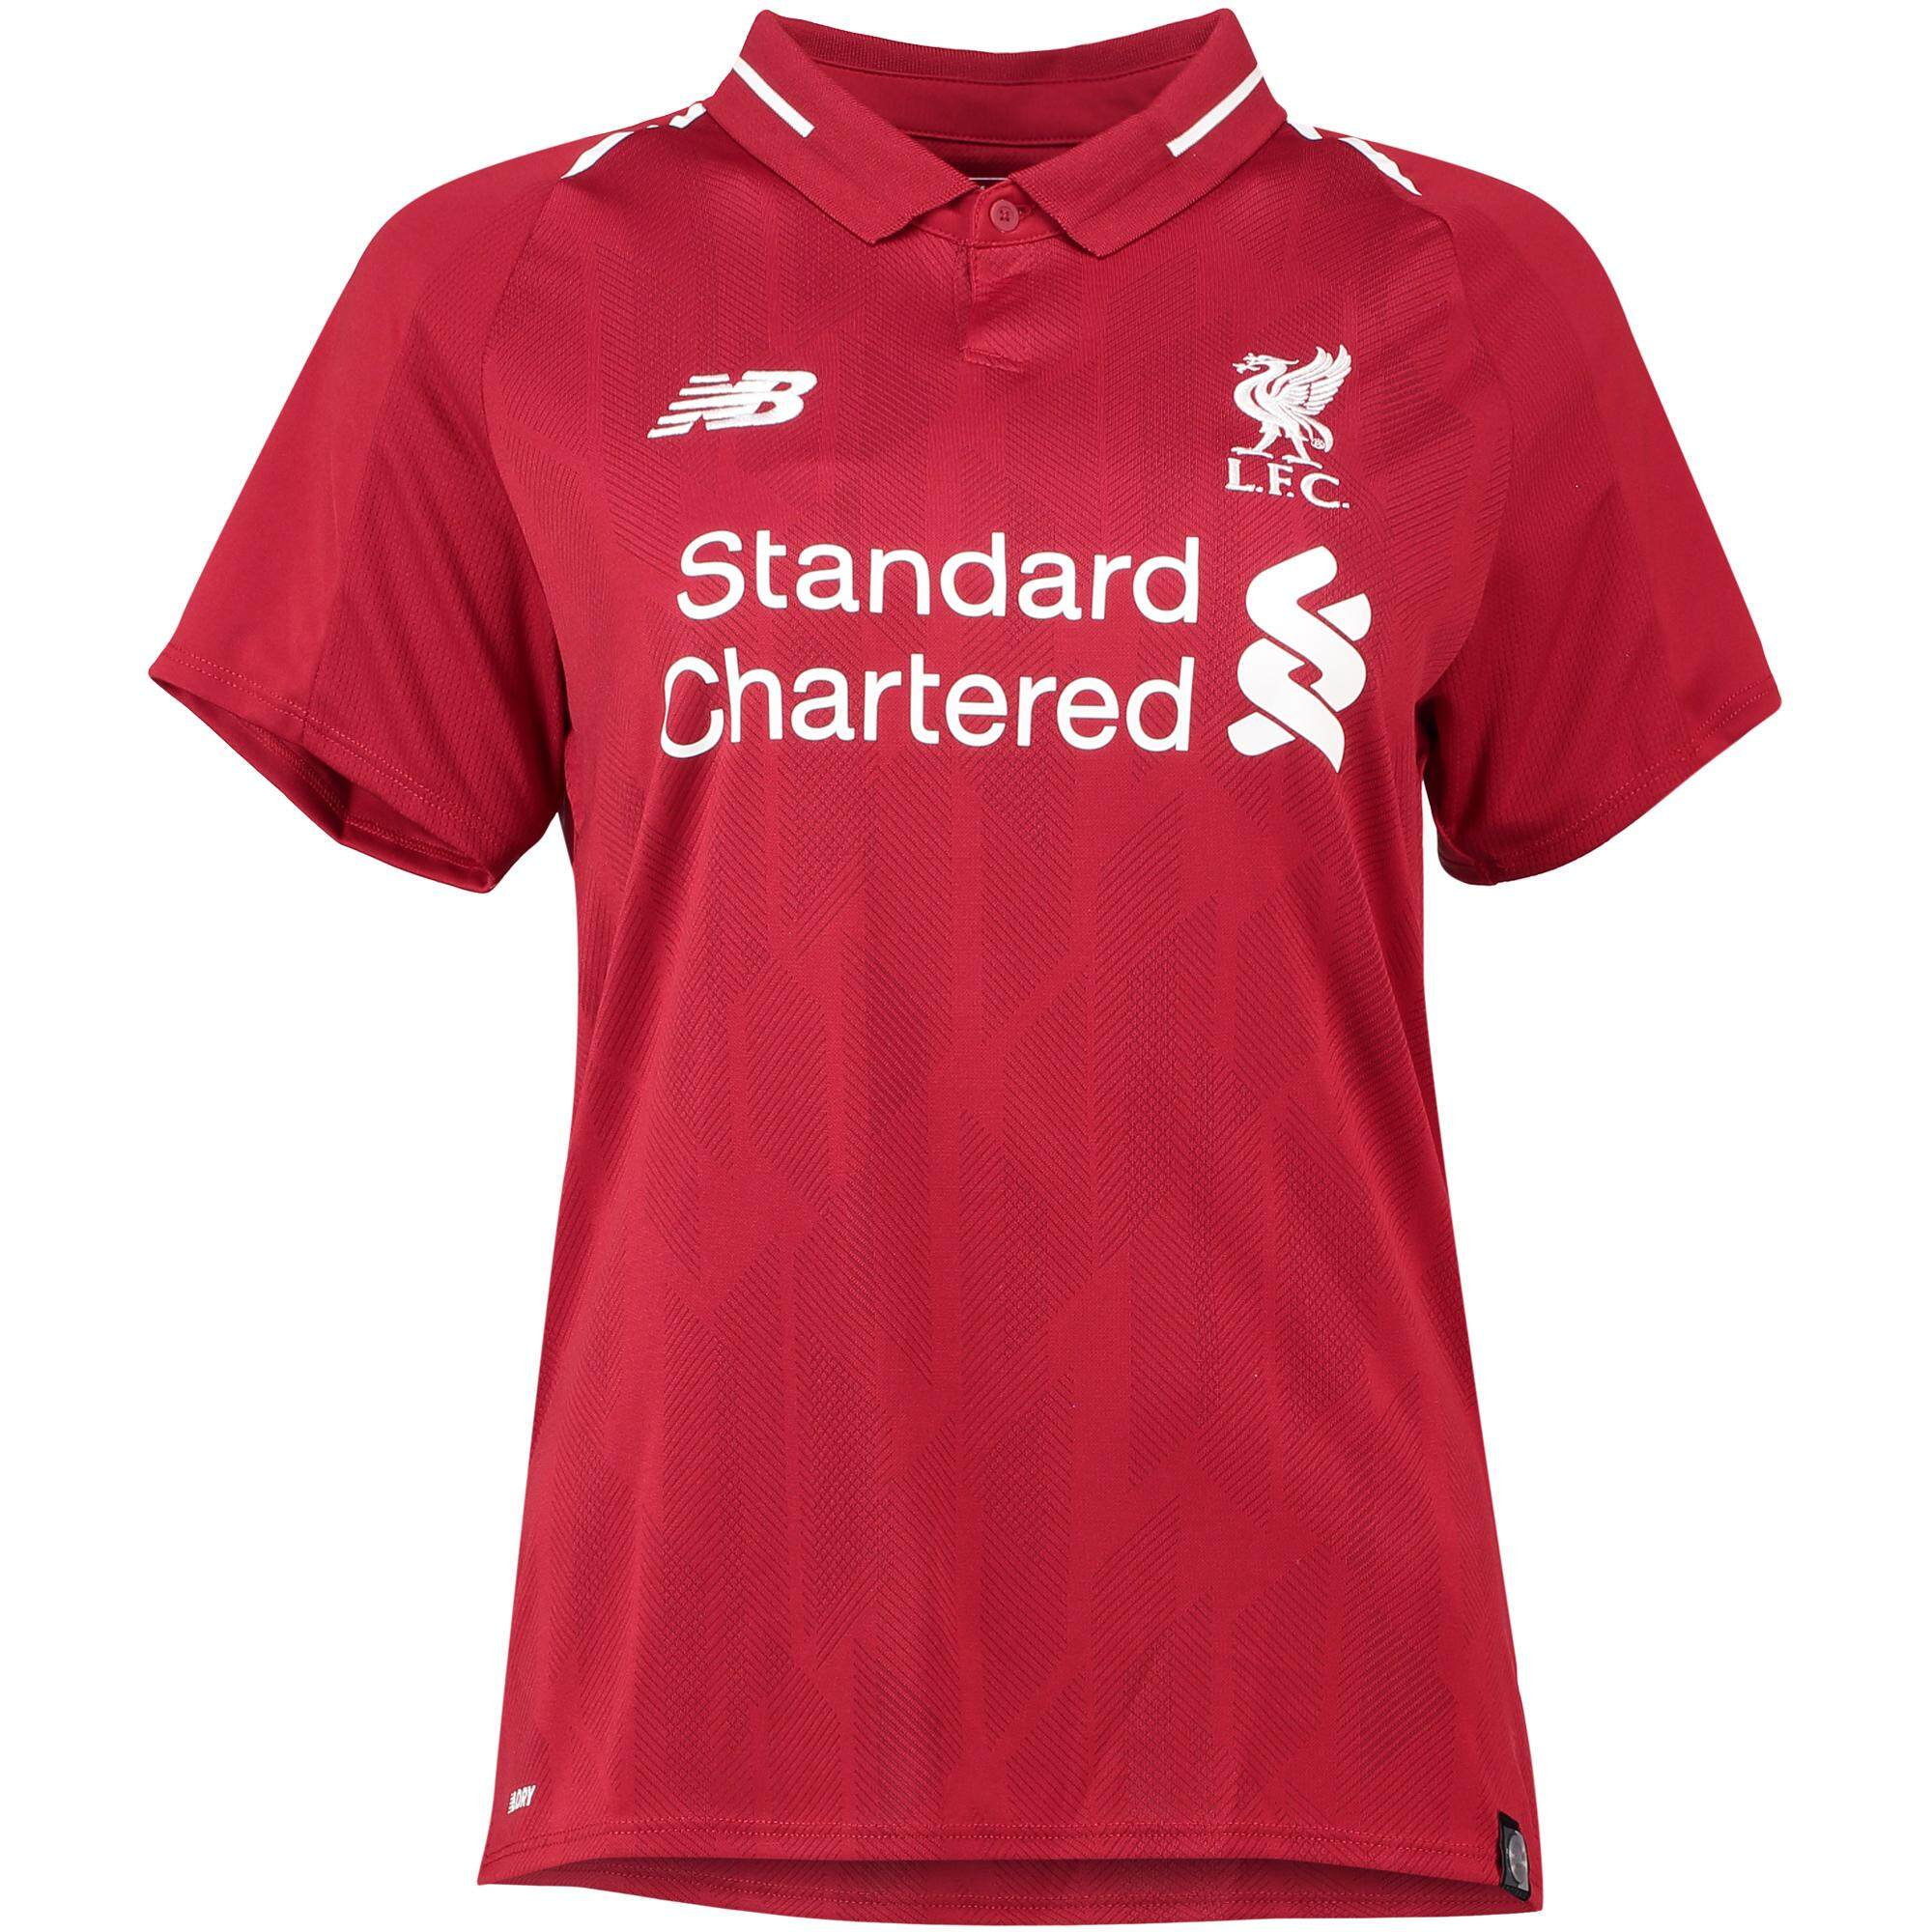 Liverpoolfc Home Jersey 2018/19 Ladies By Sport Library.